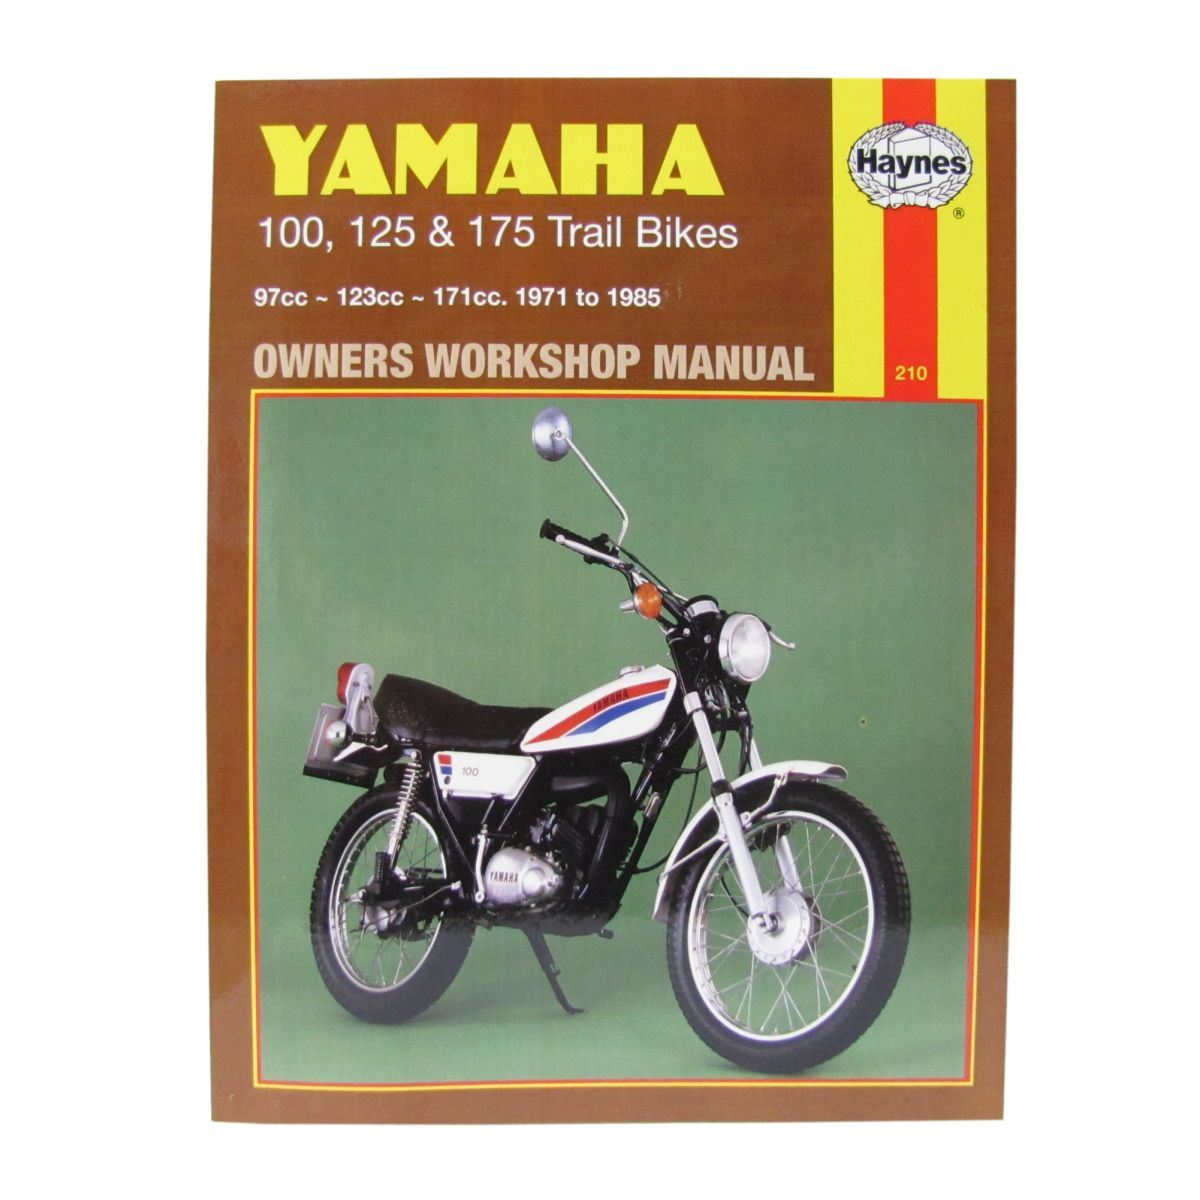 workshop manual yamaha dt100 76 83 dt125 mx 73 82 dt175 mx 73 85 rh ebay co uk Yamaha Online Service Manual Yamaha Scooter Service Manuals